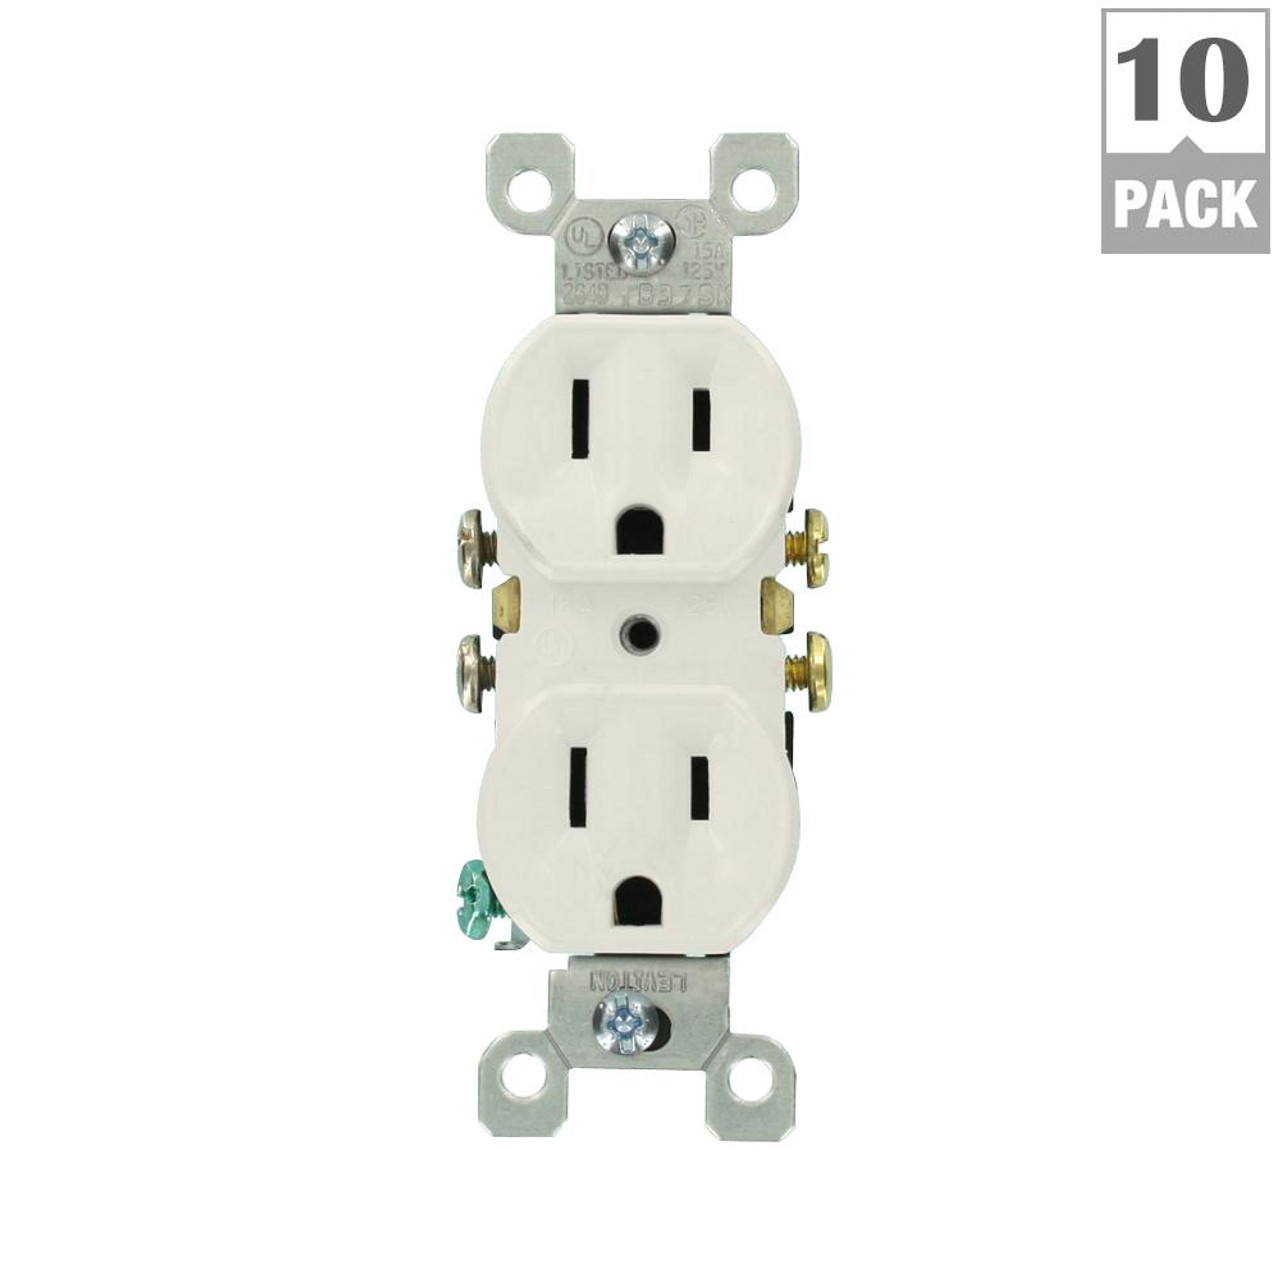 RESIDENTIAL GRADE GROUNDING DUPLEX OUTLET 15A WHITE 10-PACK | BROWN PLLET